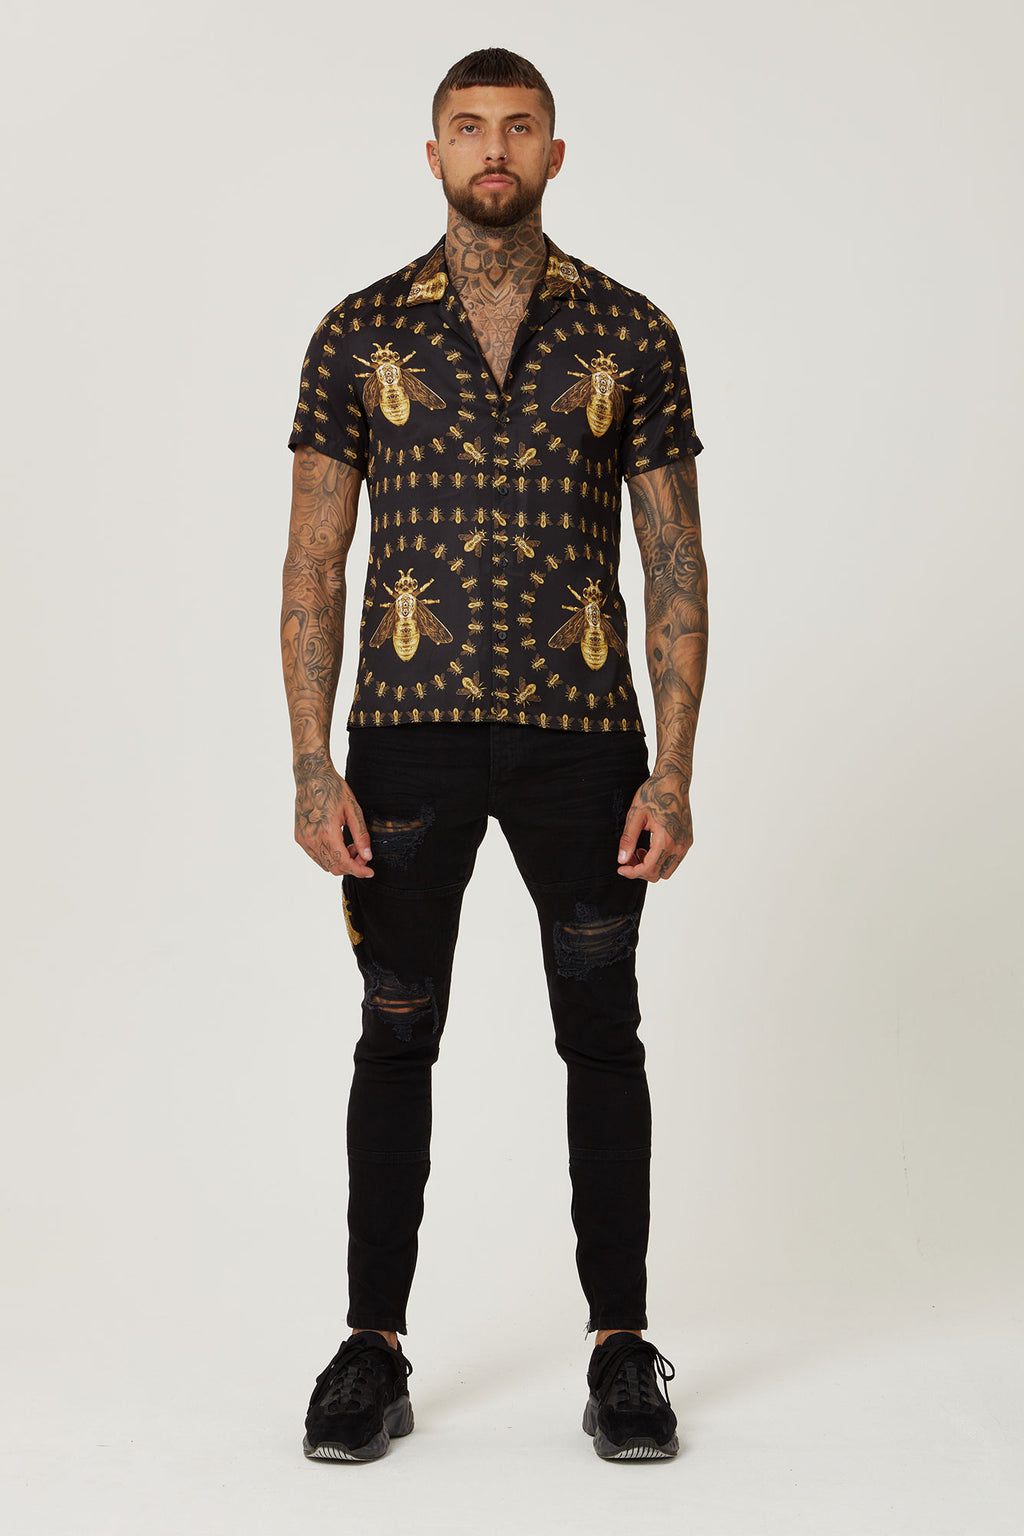 HERMANO CROCODILE BLACK GOLD CUBAN S/S SHIRT